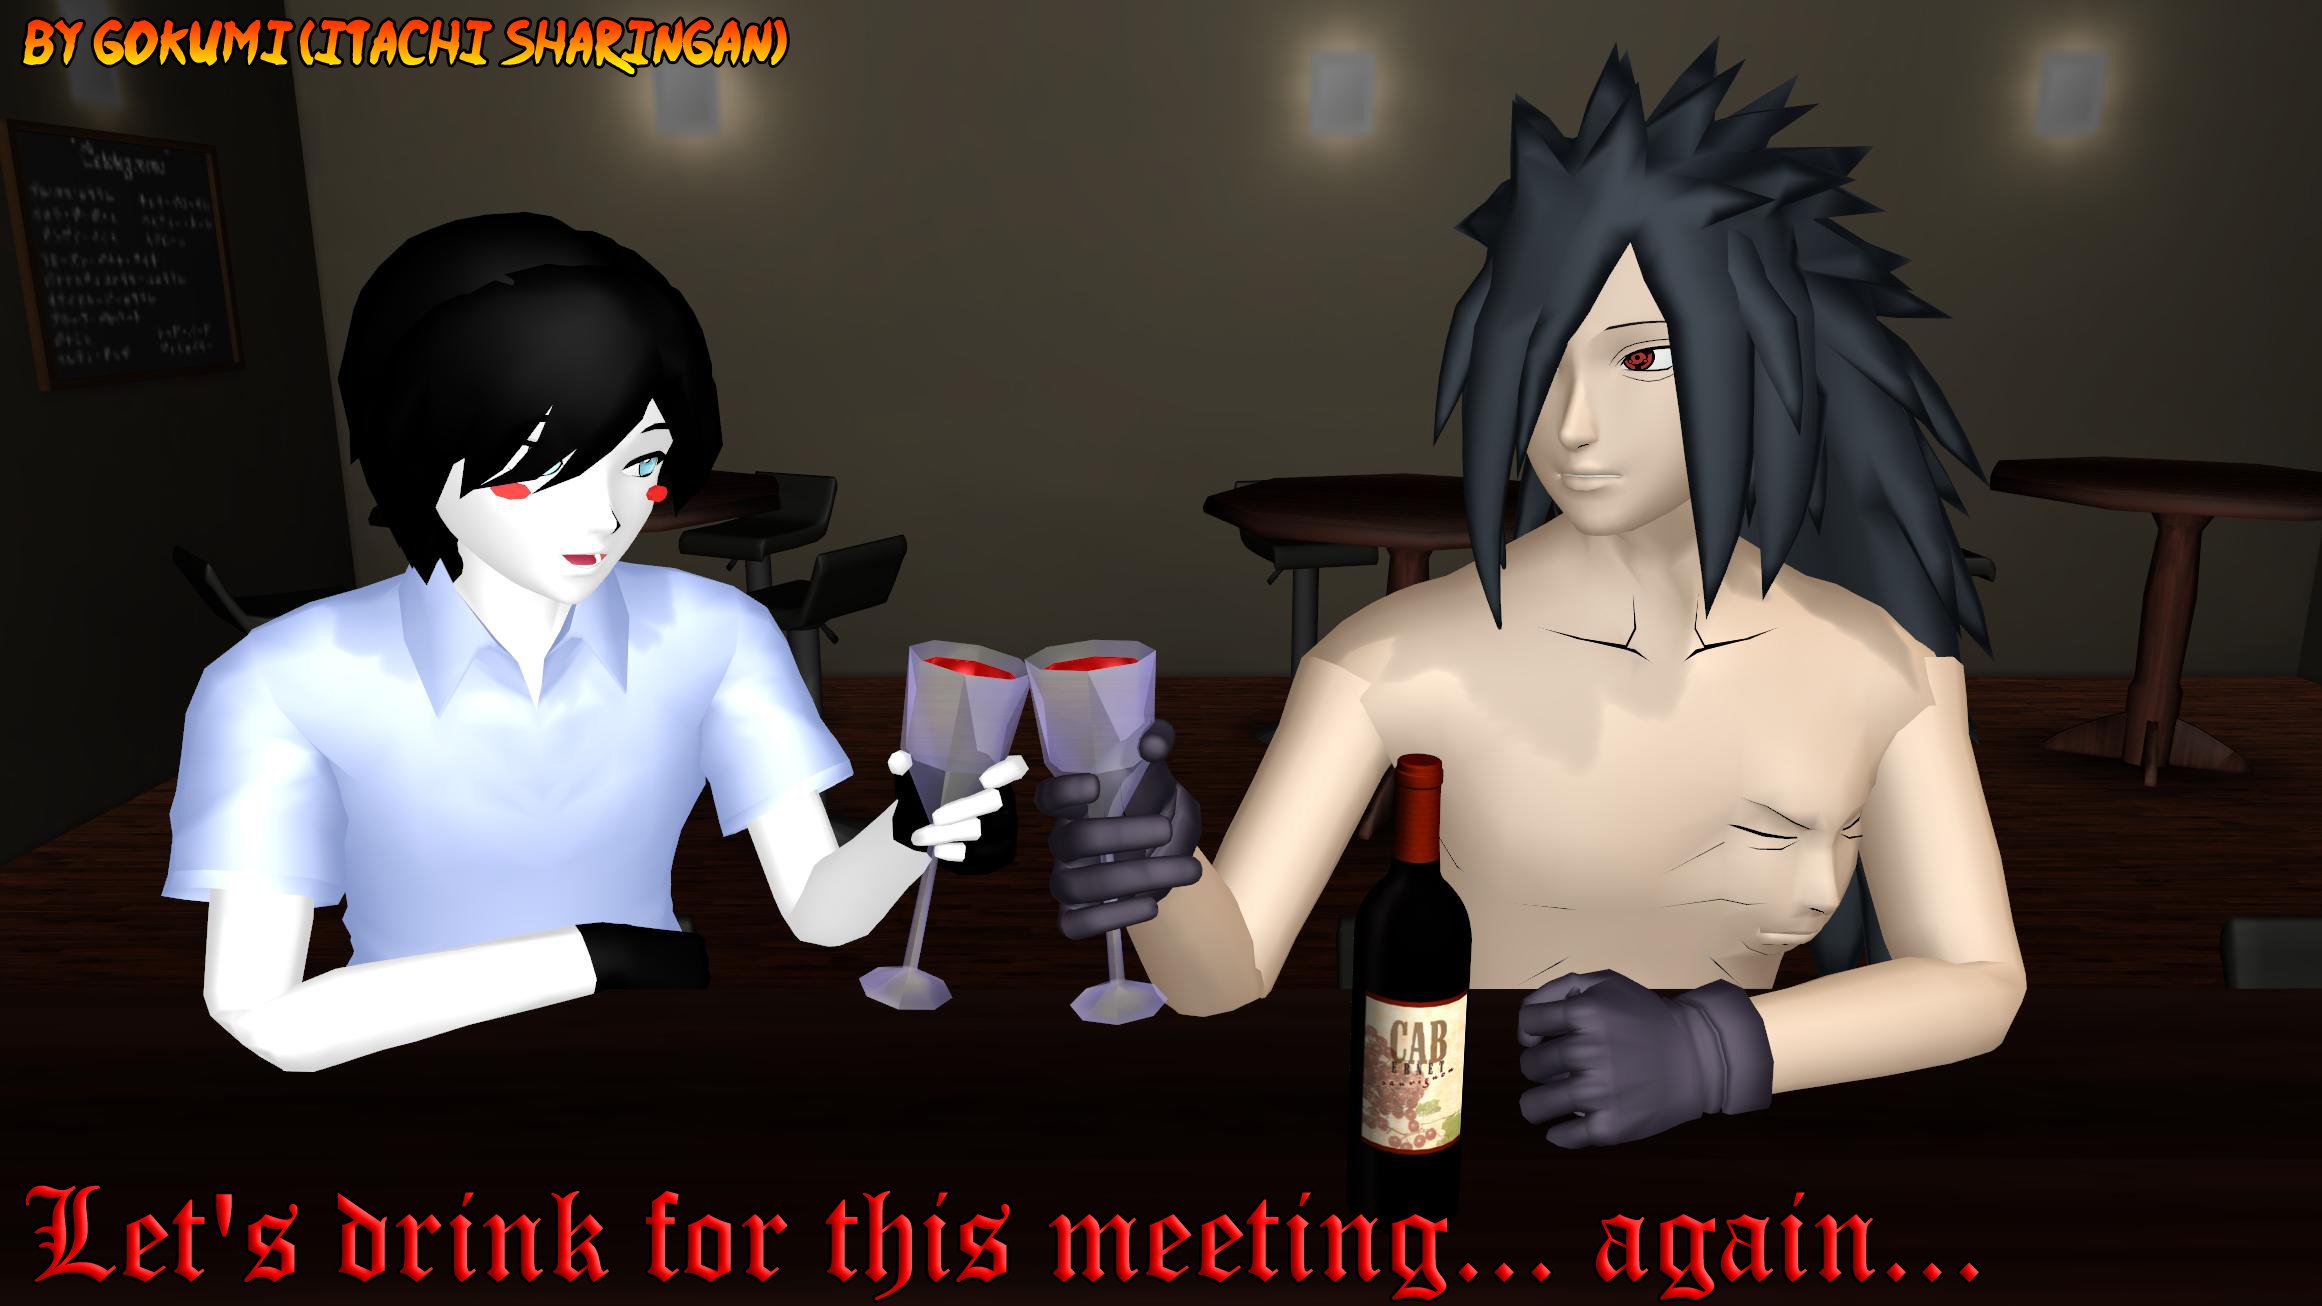 Let's drink for this meeting... again... by Gokumi